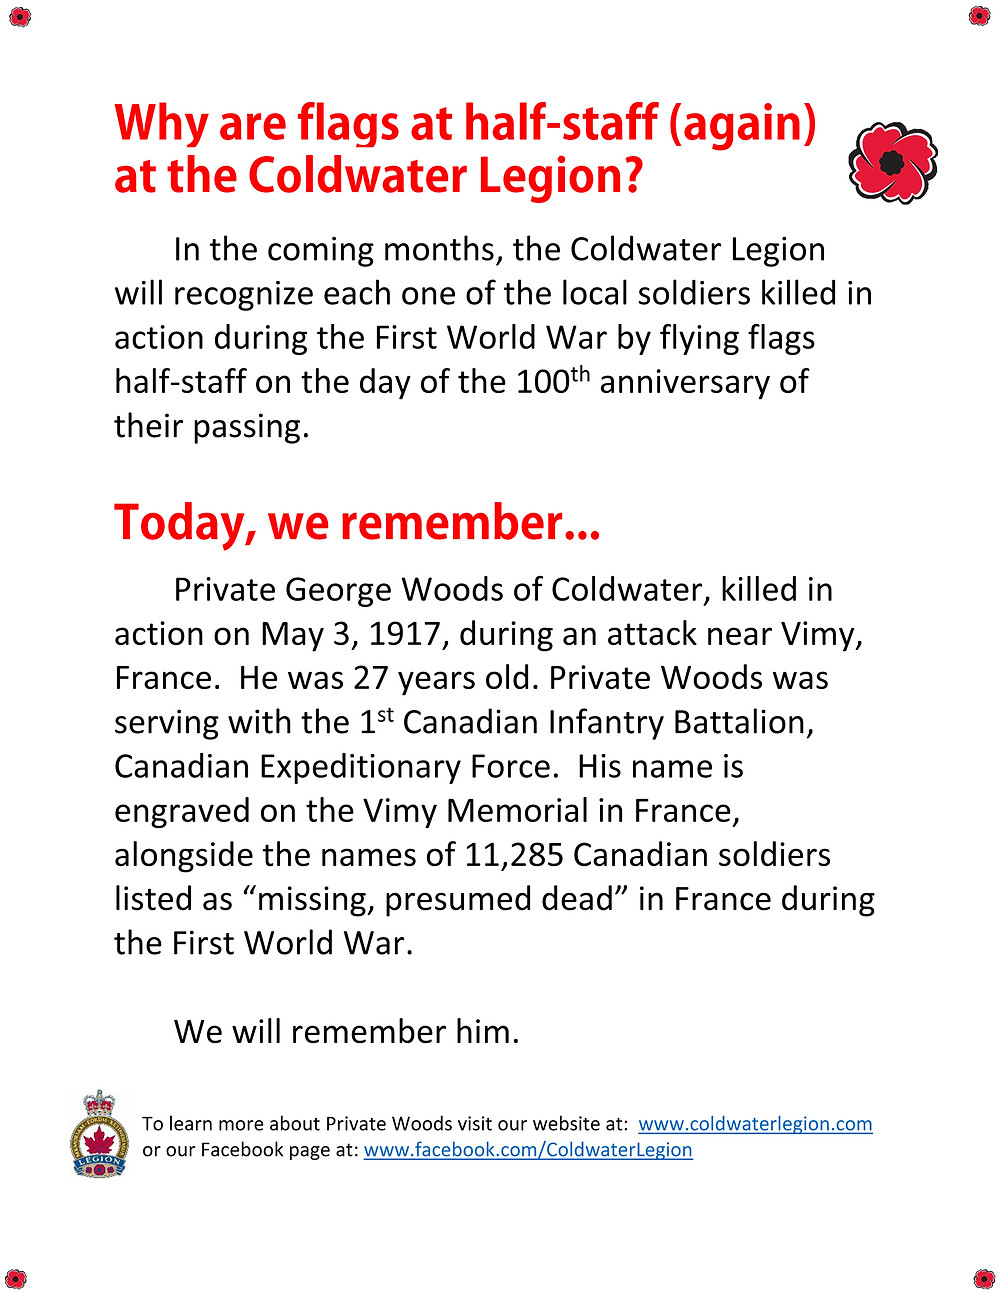 Coldwater remembers: Private George Woods